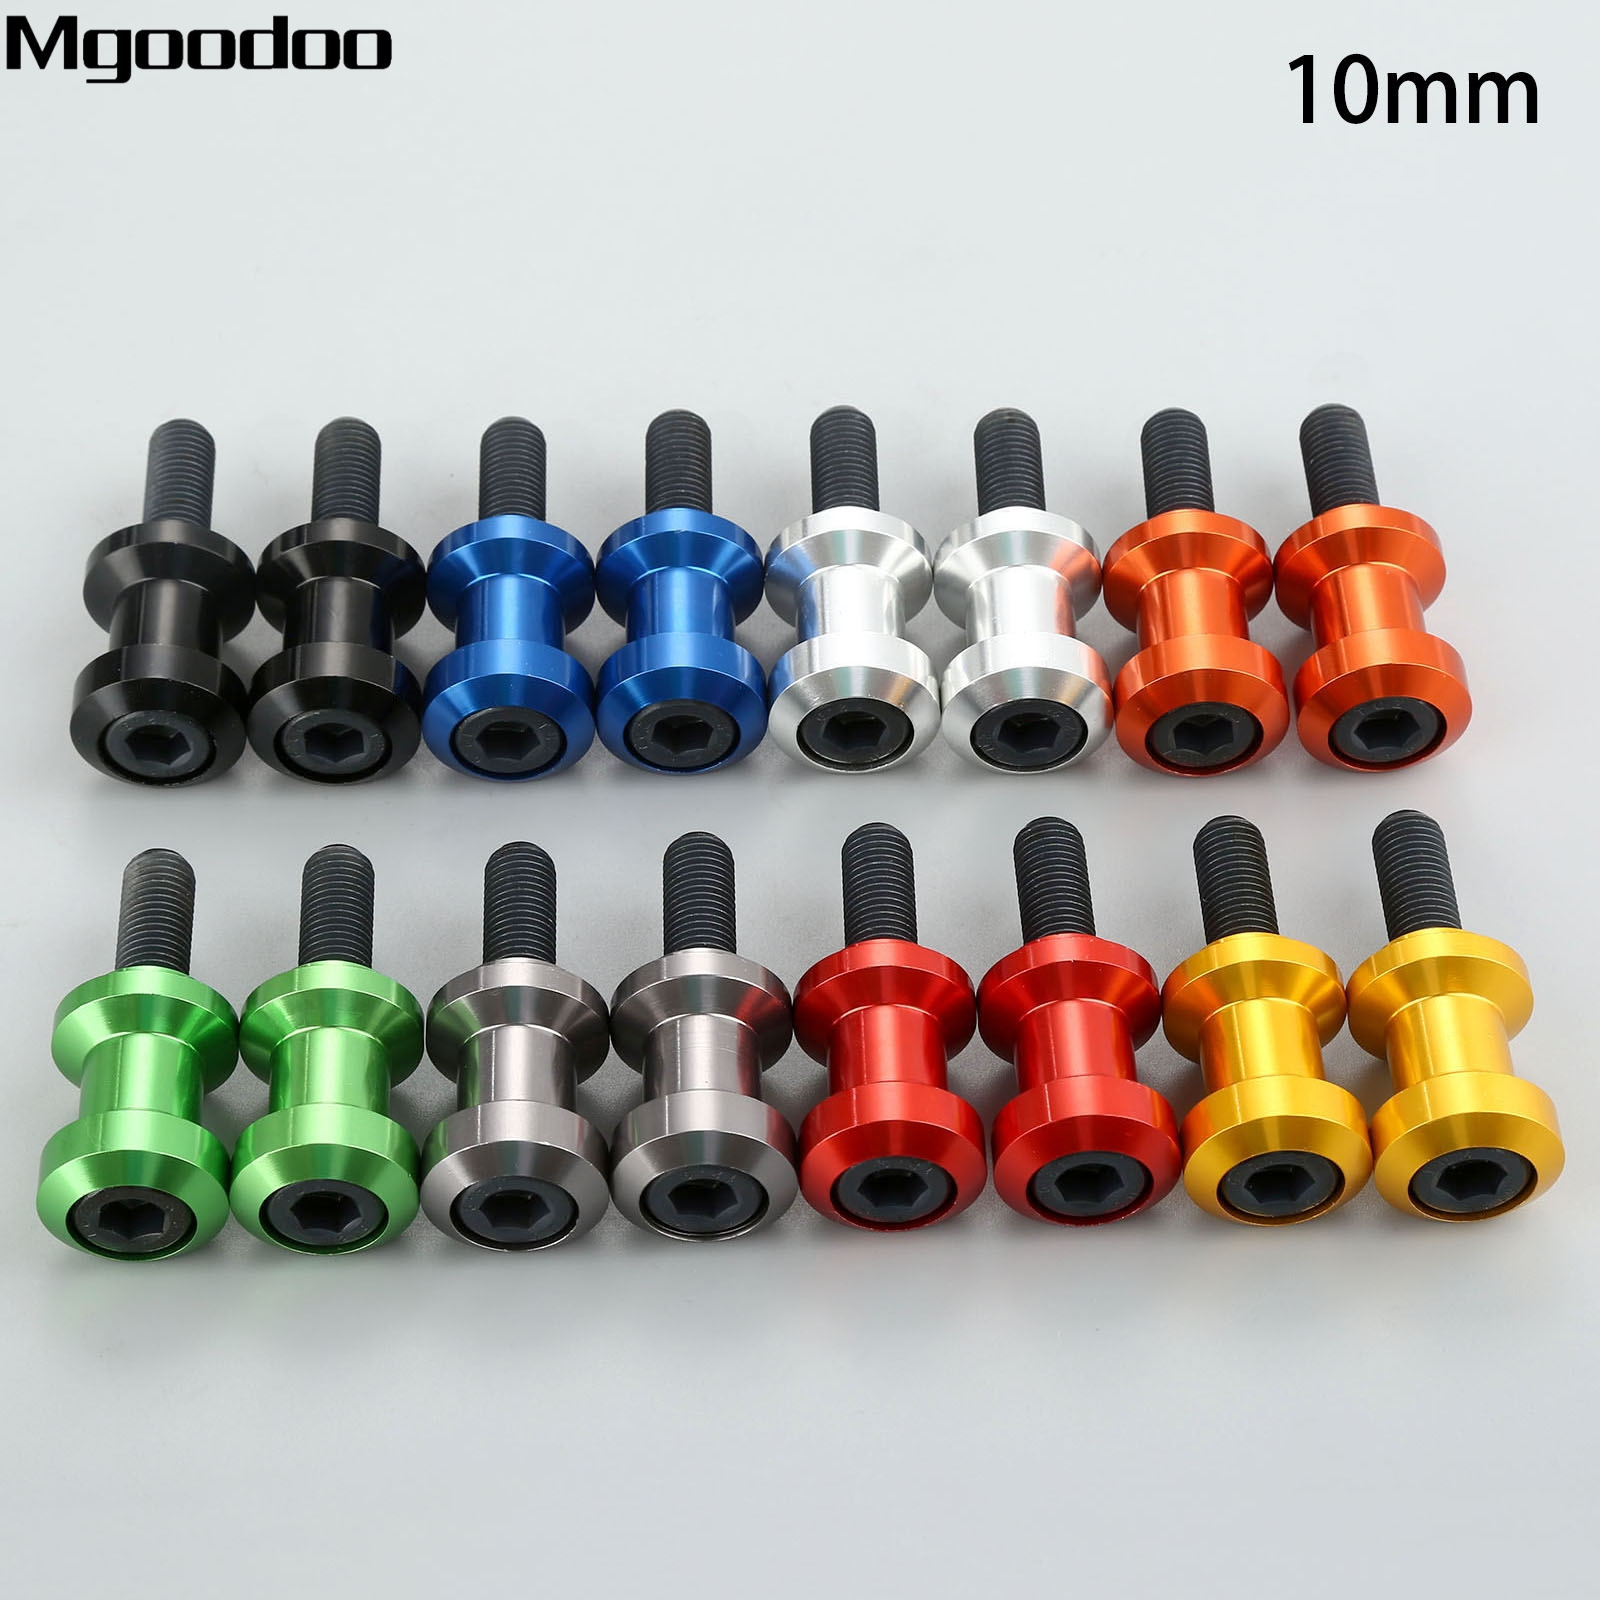 Mgoodoo CNC Aluminium 10mm Motorcycle Swingarm Spools Sliders For Yamaha YZF750/1000 FZR400/600/1000 KTM 690 990 Duke 1190 RC8 15pcs set hss co 1 5 10mm high speed steel m35 cobalt twist drill bit wood metal working drilling power tools set mayitr